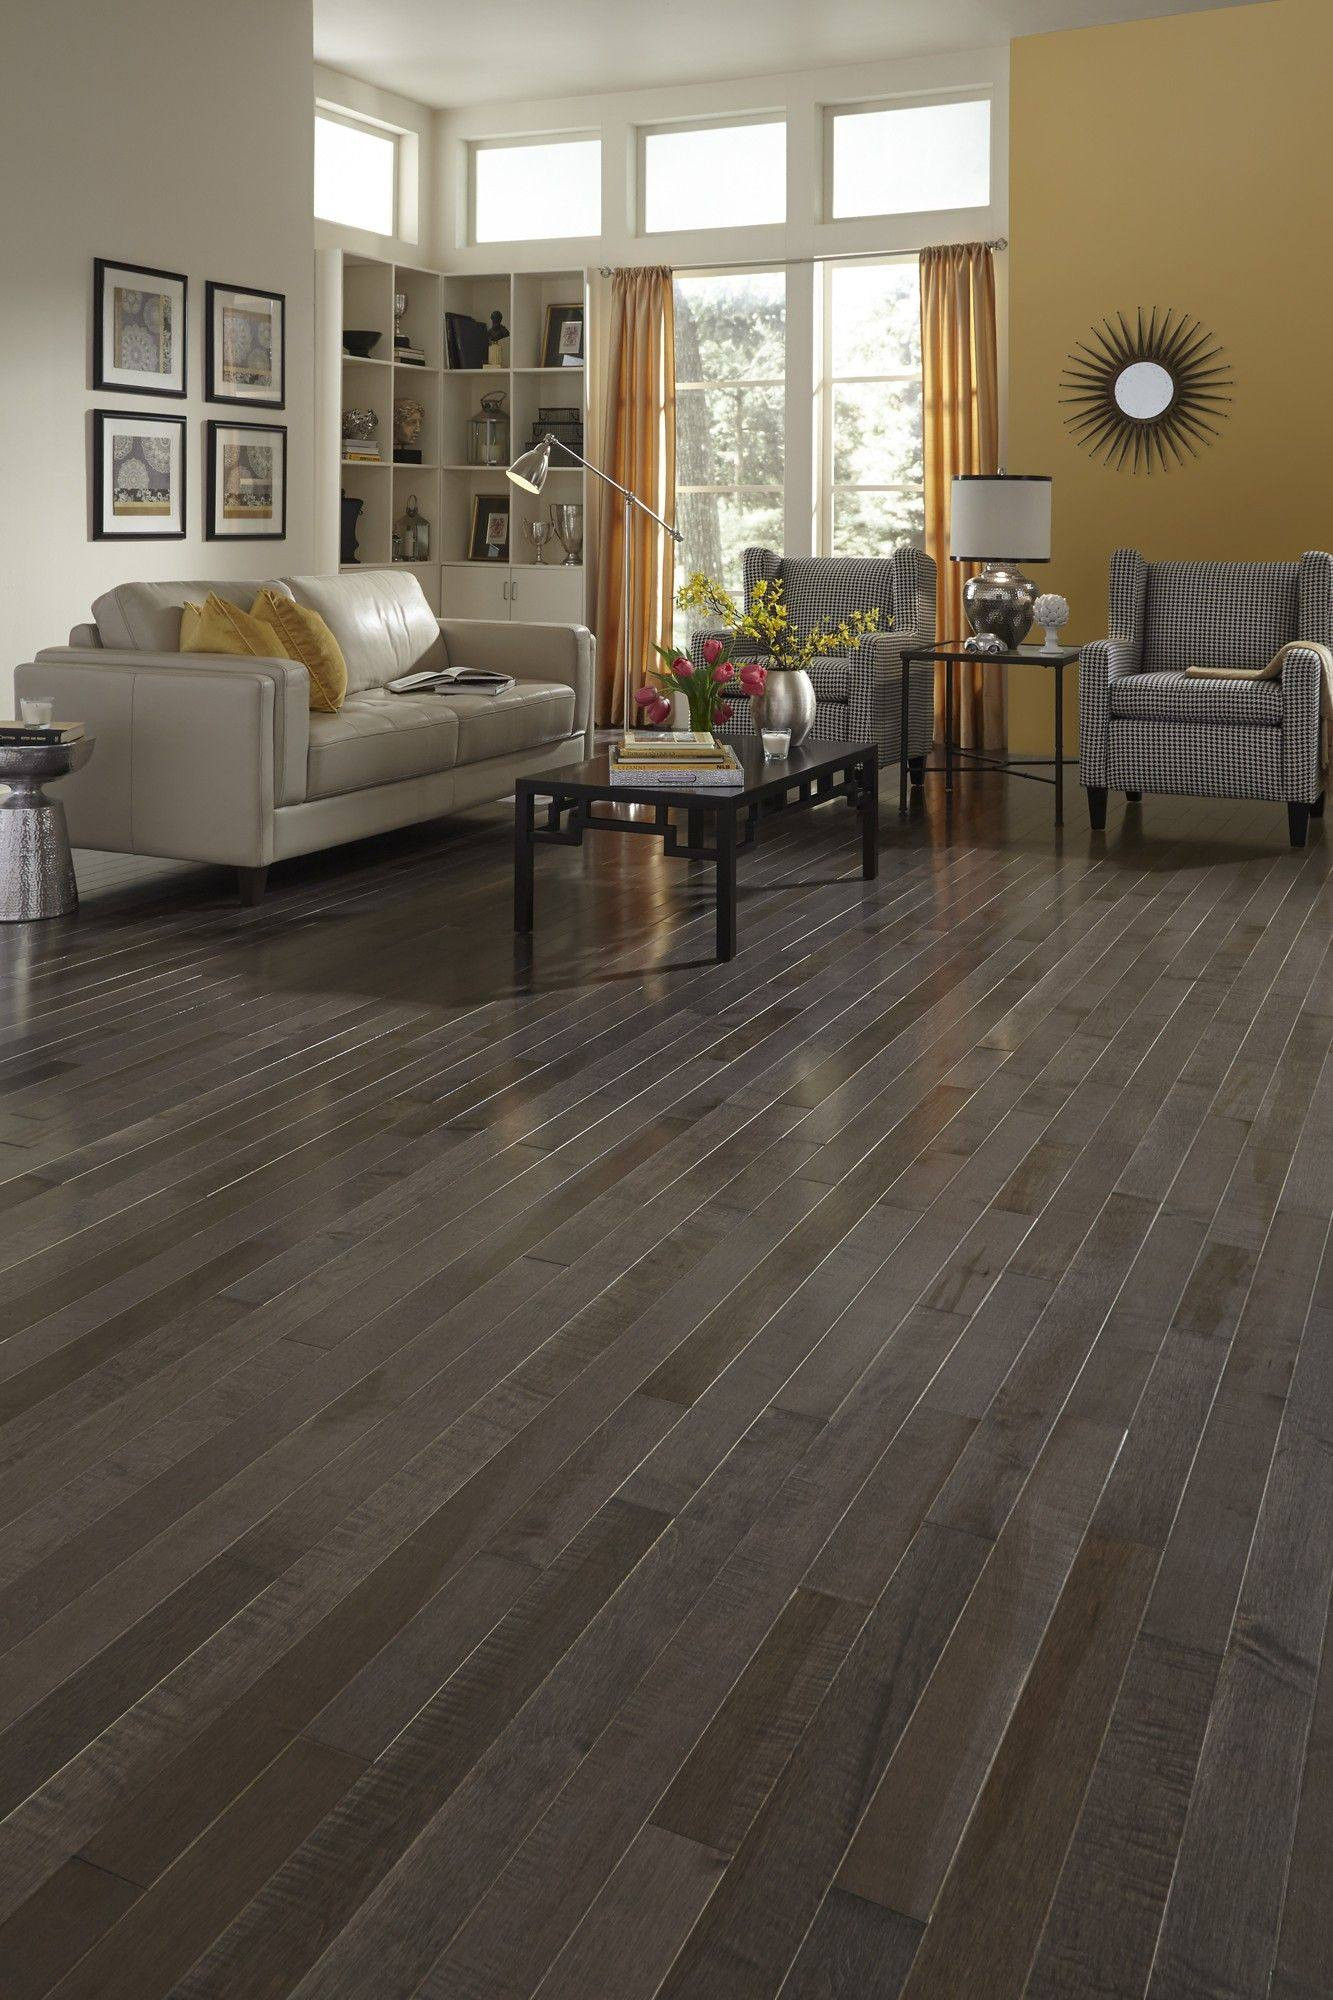 maple hardwood flooring reviews of best maple flooring pros and cons on a budget best flooring ideas intended for how to lay a hardwood floor luxury mirage maple charcoal floor and ideas of maple hardwood